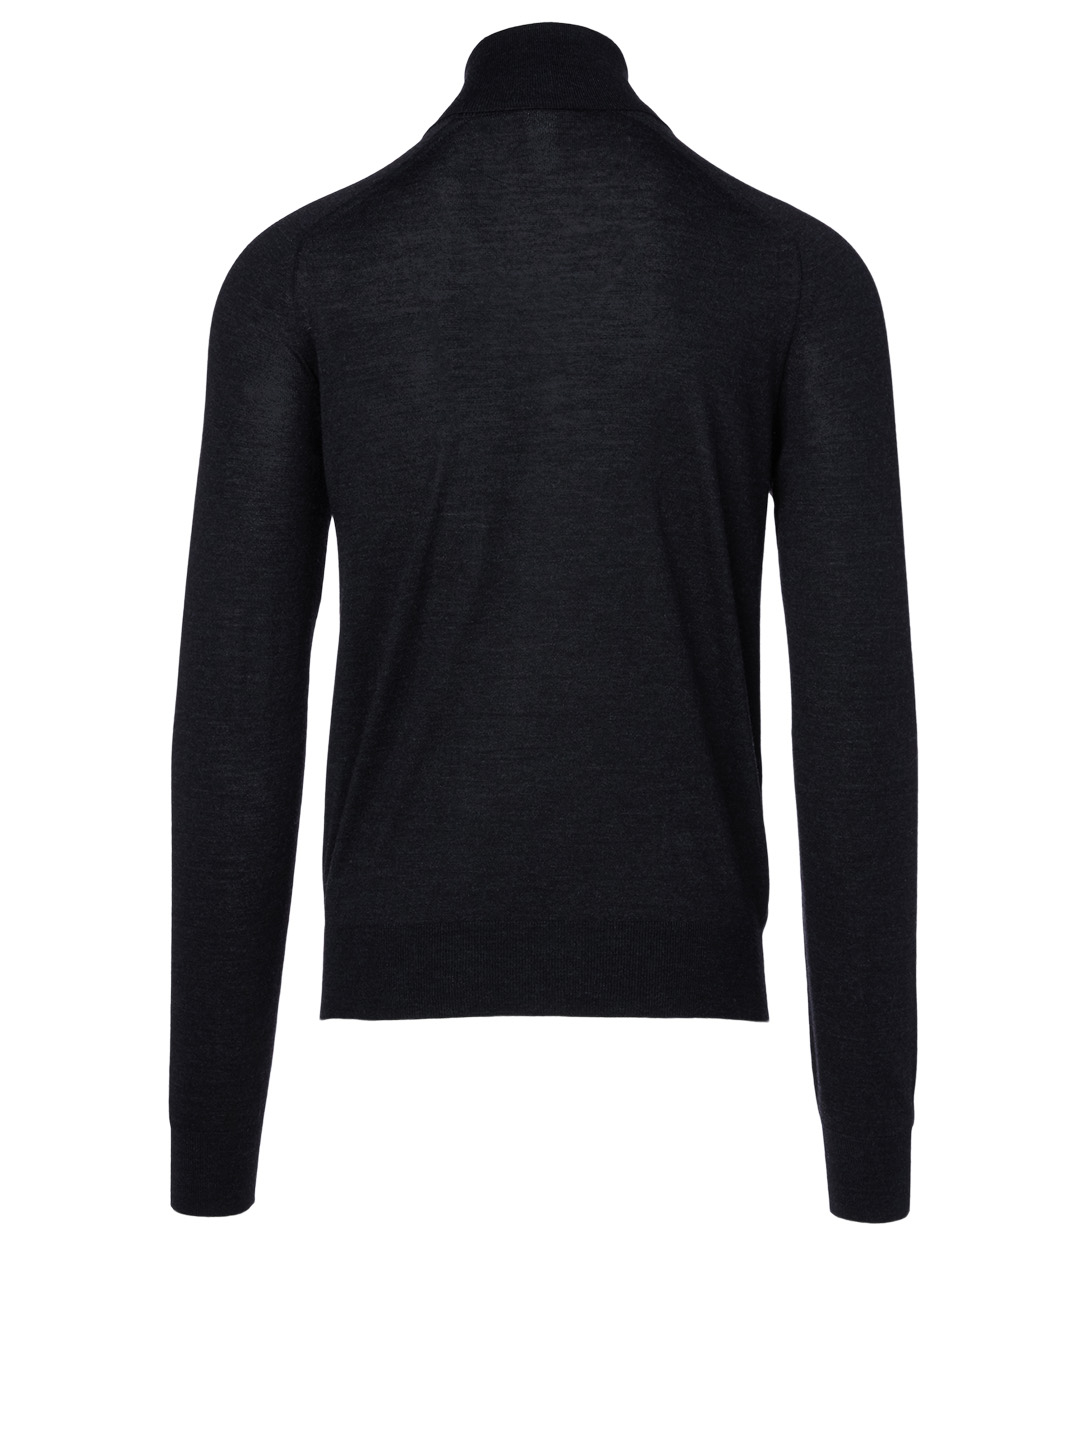 THE ROW Ronald Wool Turtleneck Sweater Men's Black